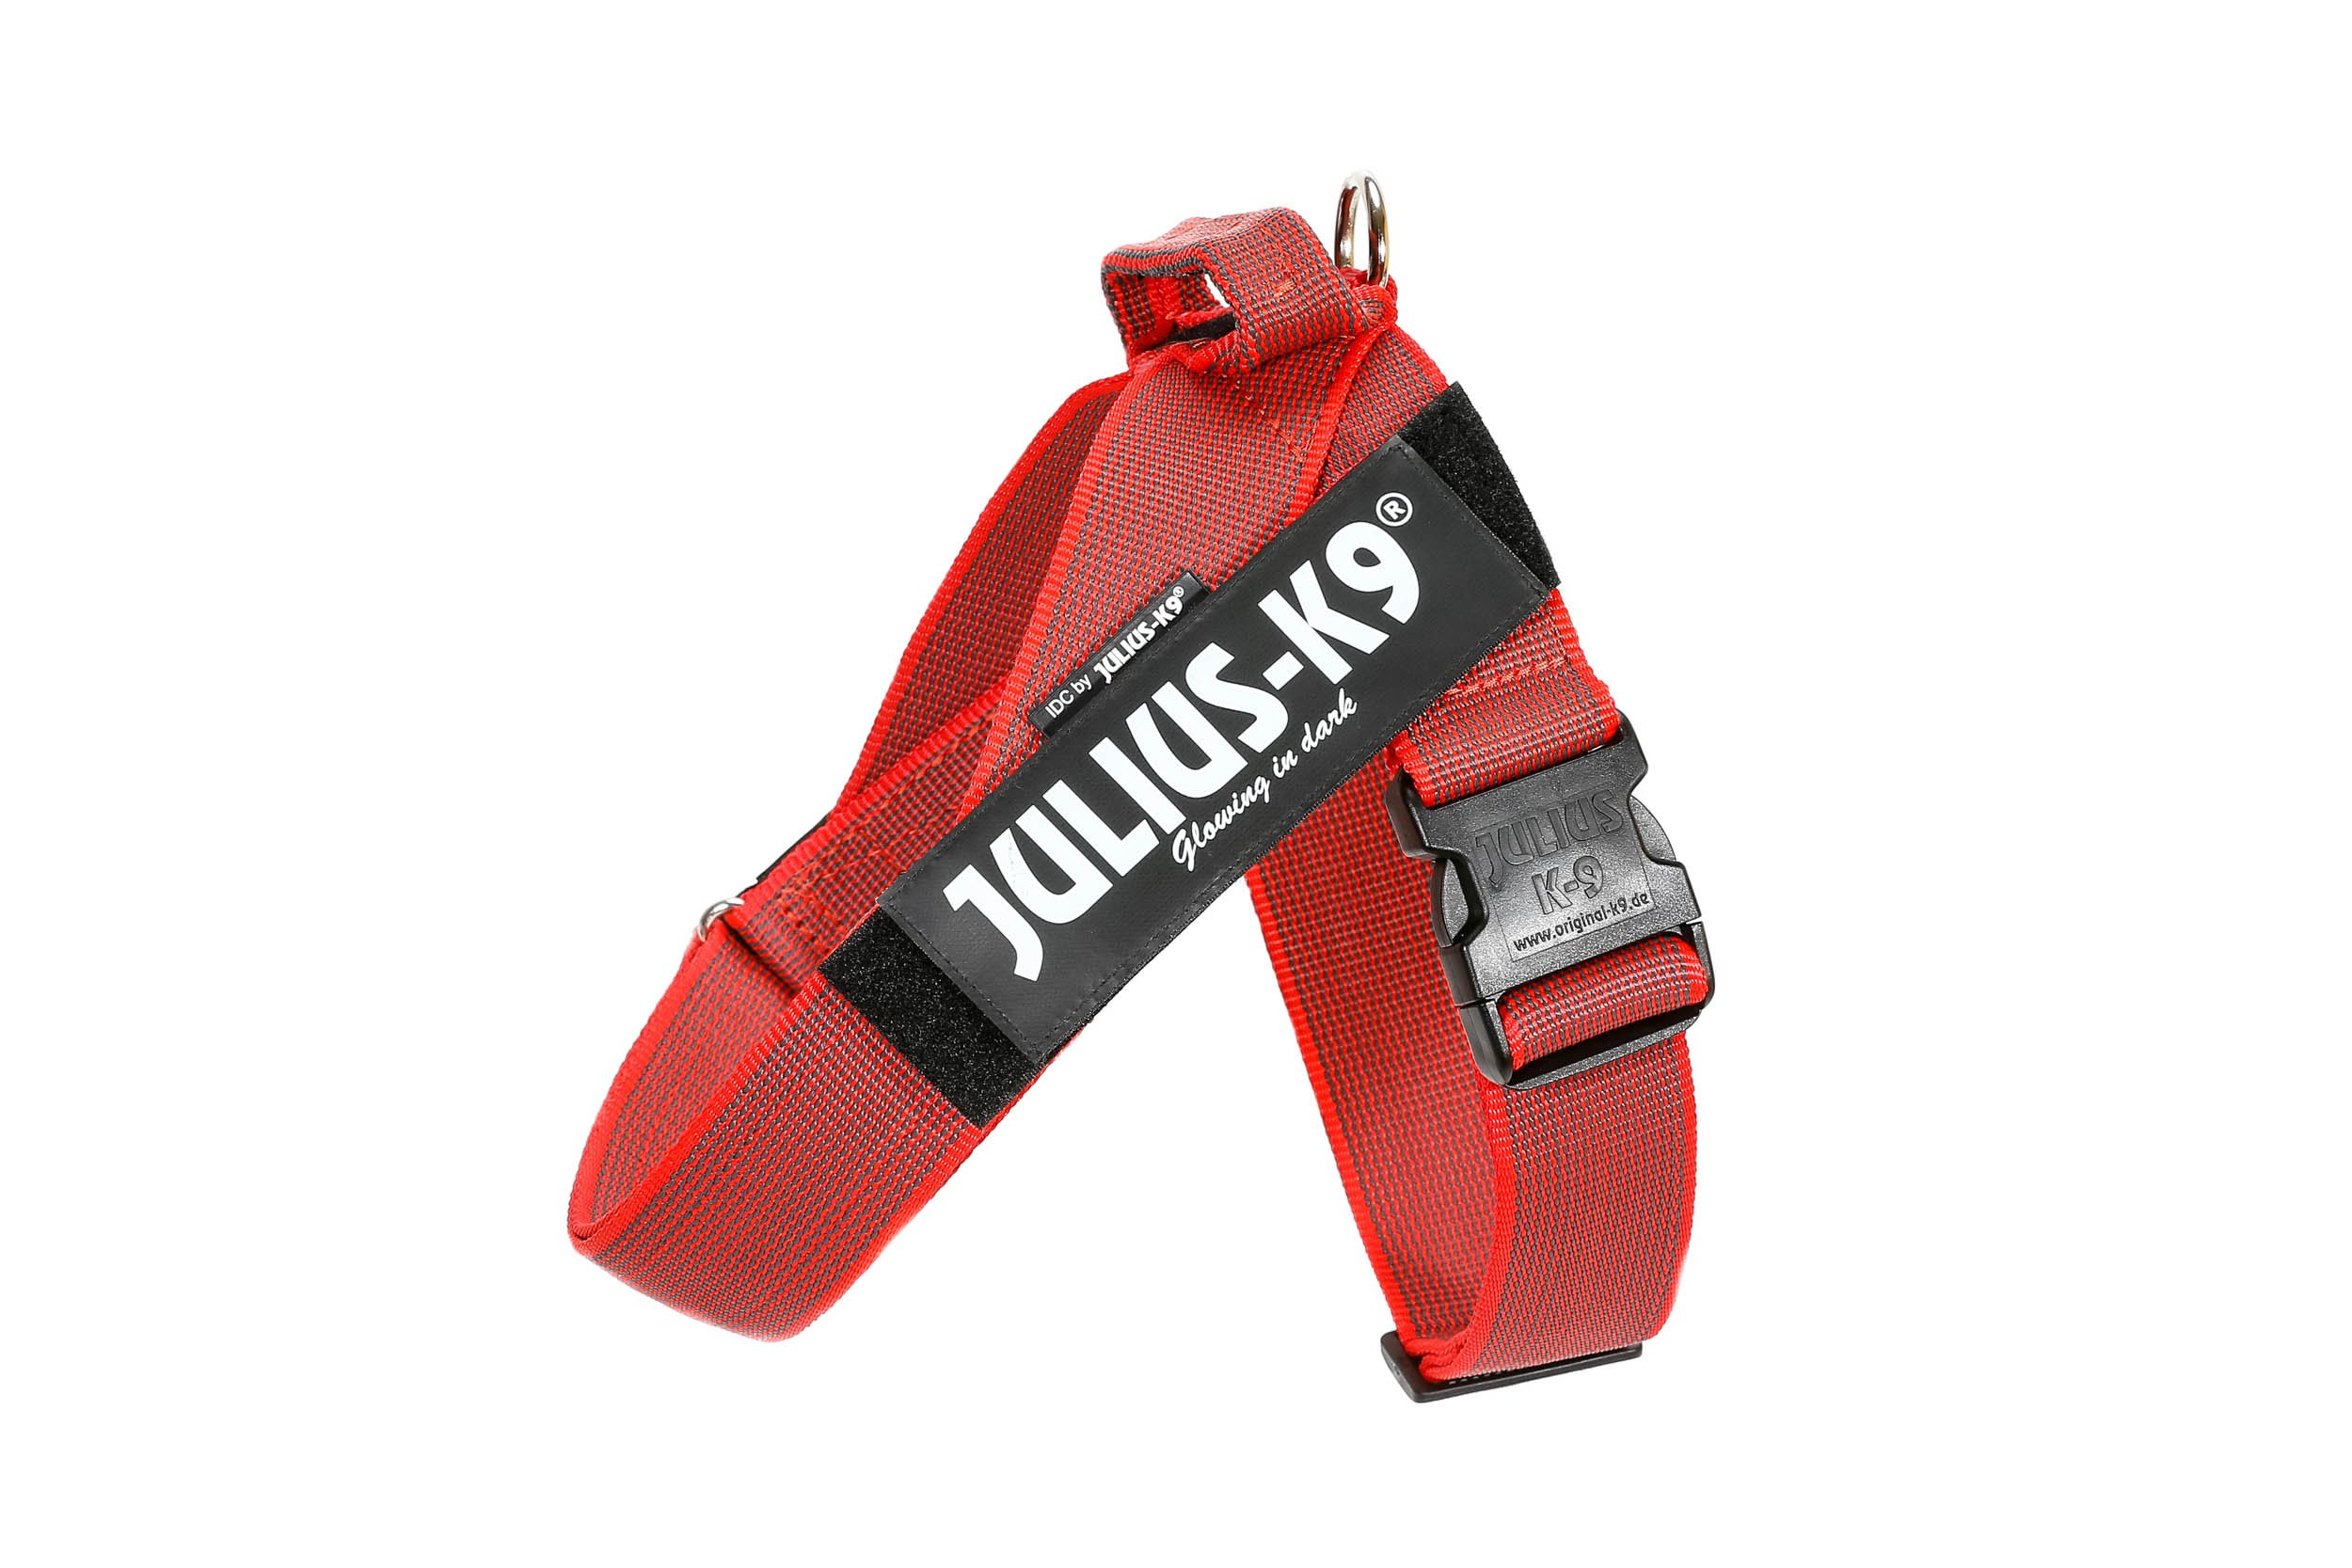 Julius-K9, 16501-IDC-R-15, Color&Gray IDC-Beltharness, Size: 1, red-Gray